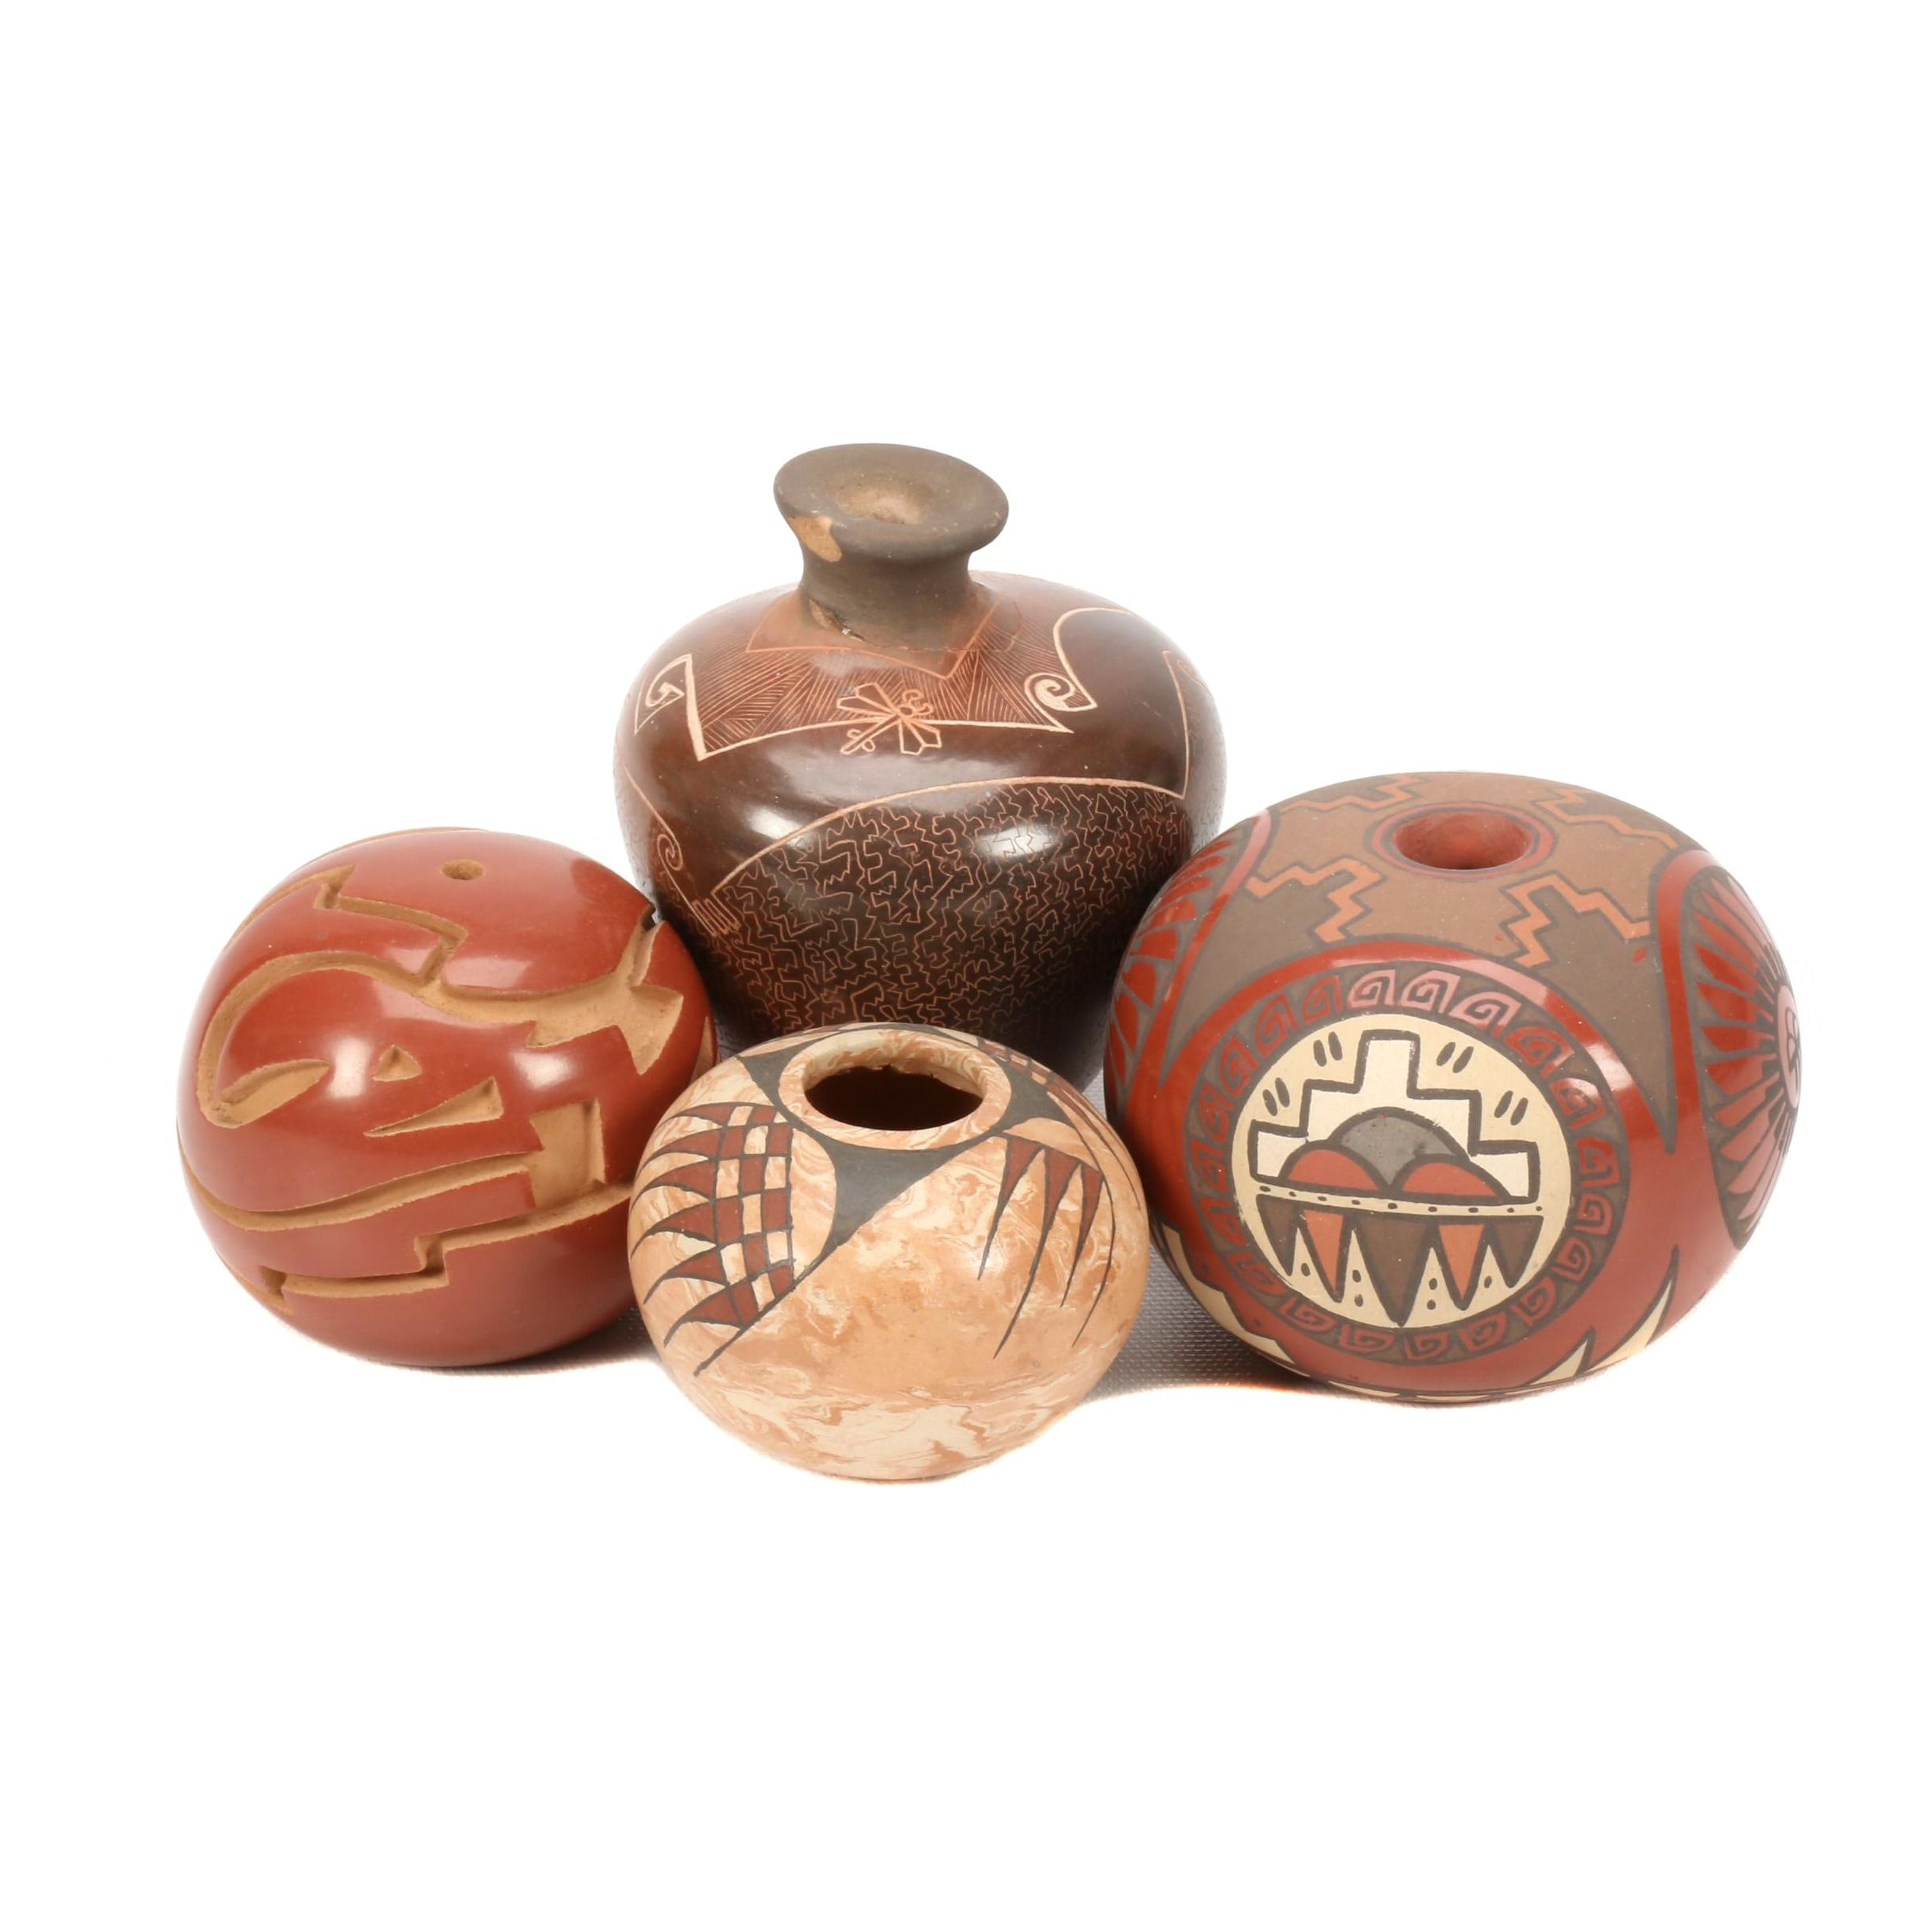 Signed Santa Clara Pueblo Polychromed Pottery Seed Pots with Polychromed Ollas